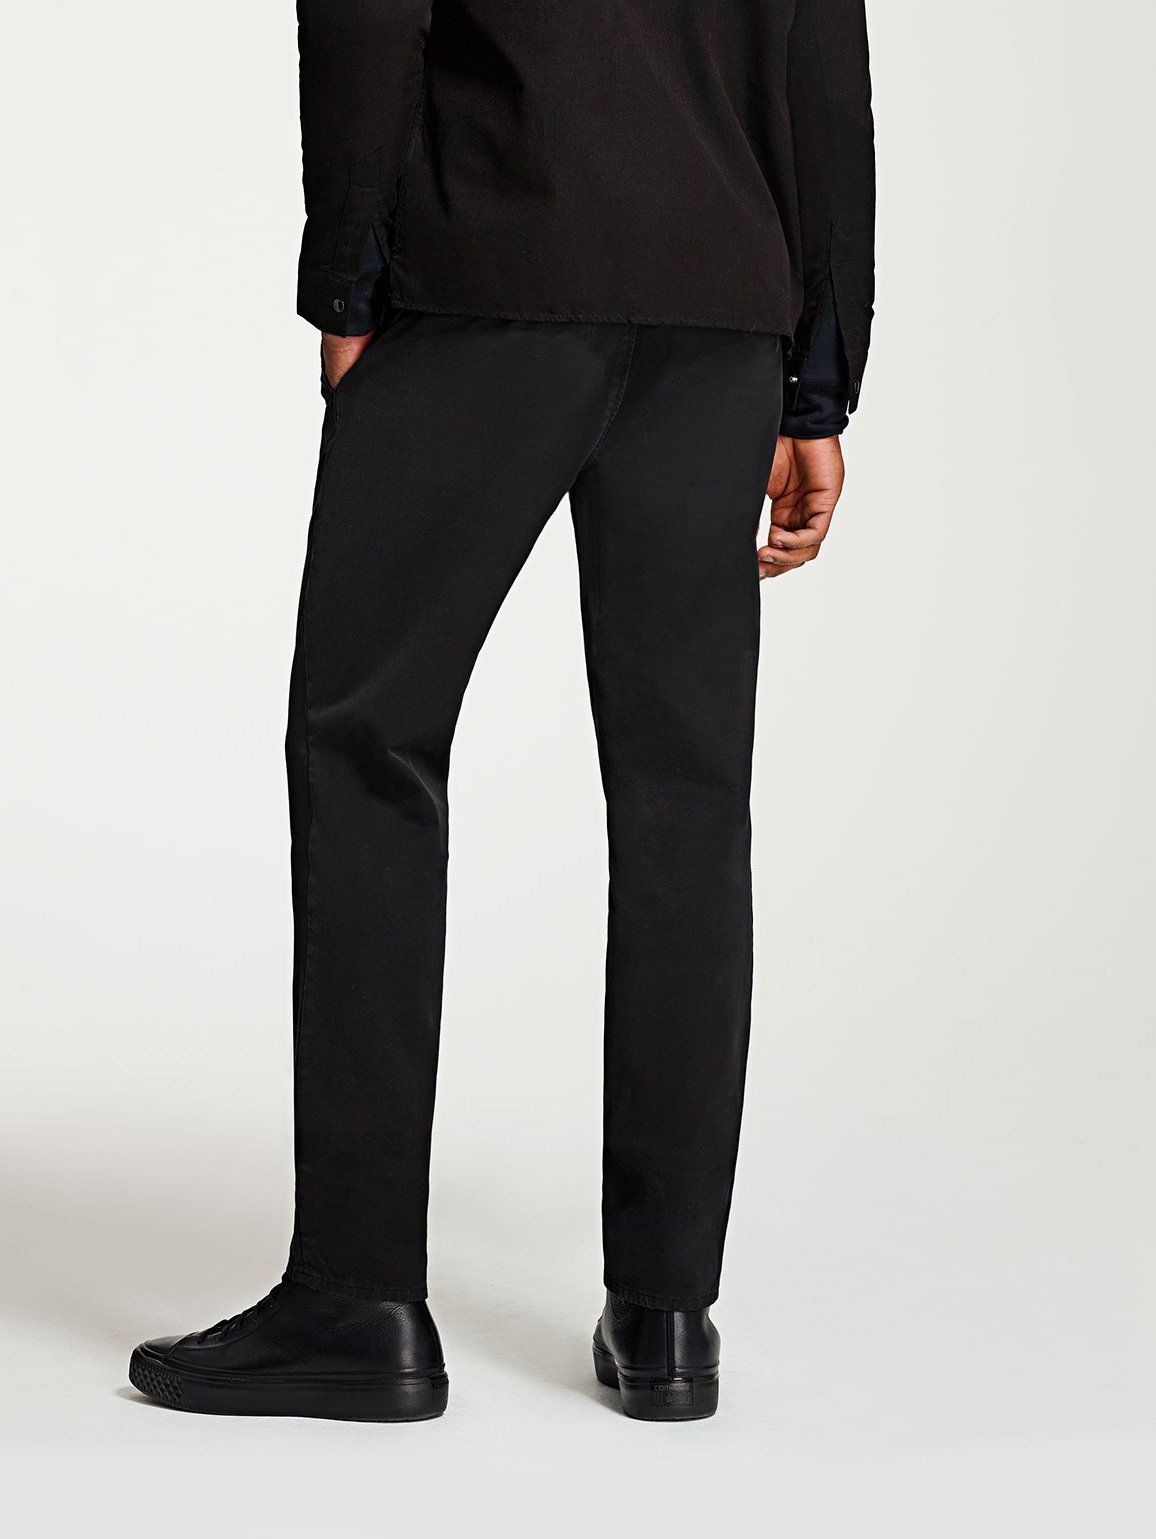 Men - Slim Black Chino - Duke Slim Chino Brace - DL1961